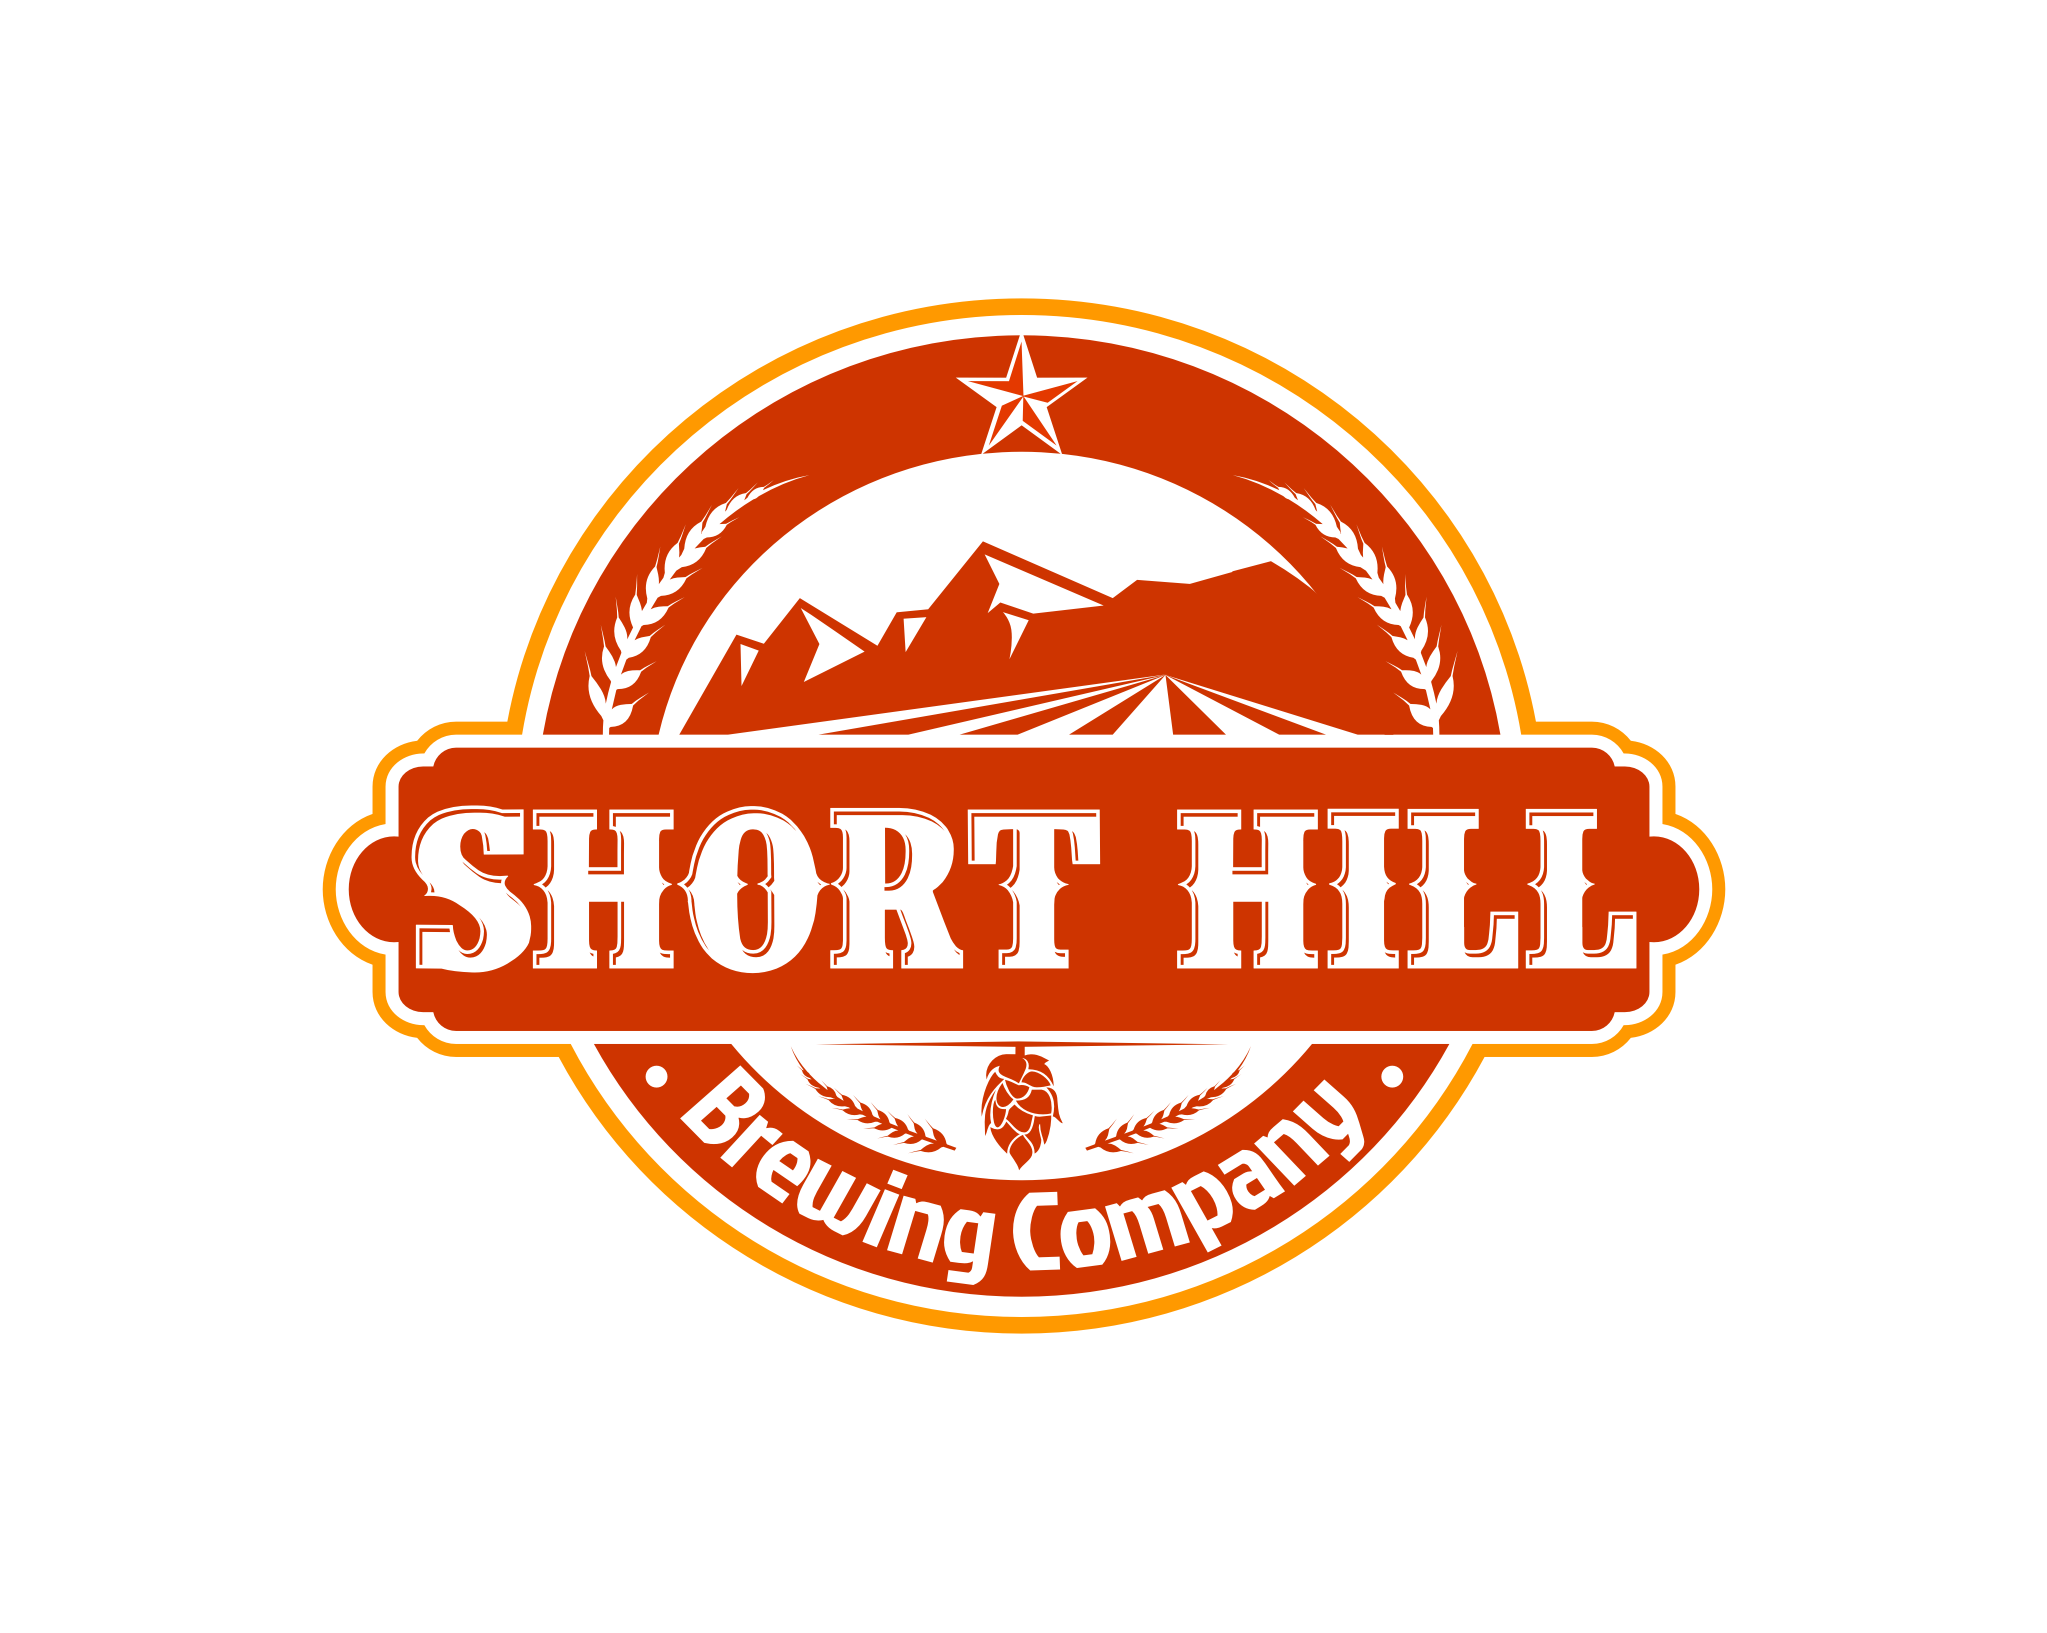 Logo Design by Tille Famz - Entry No. 11 in the Logo Design Contest Unique Logo Design Wanted for Short Hill Brewing Company.